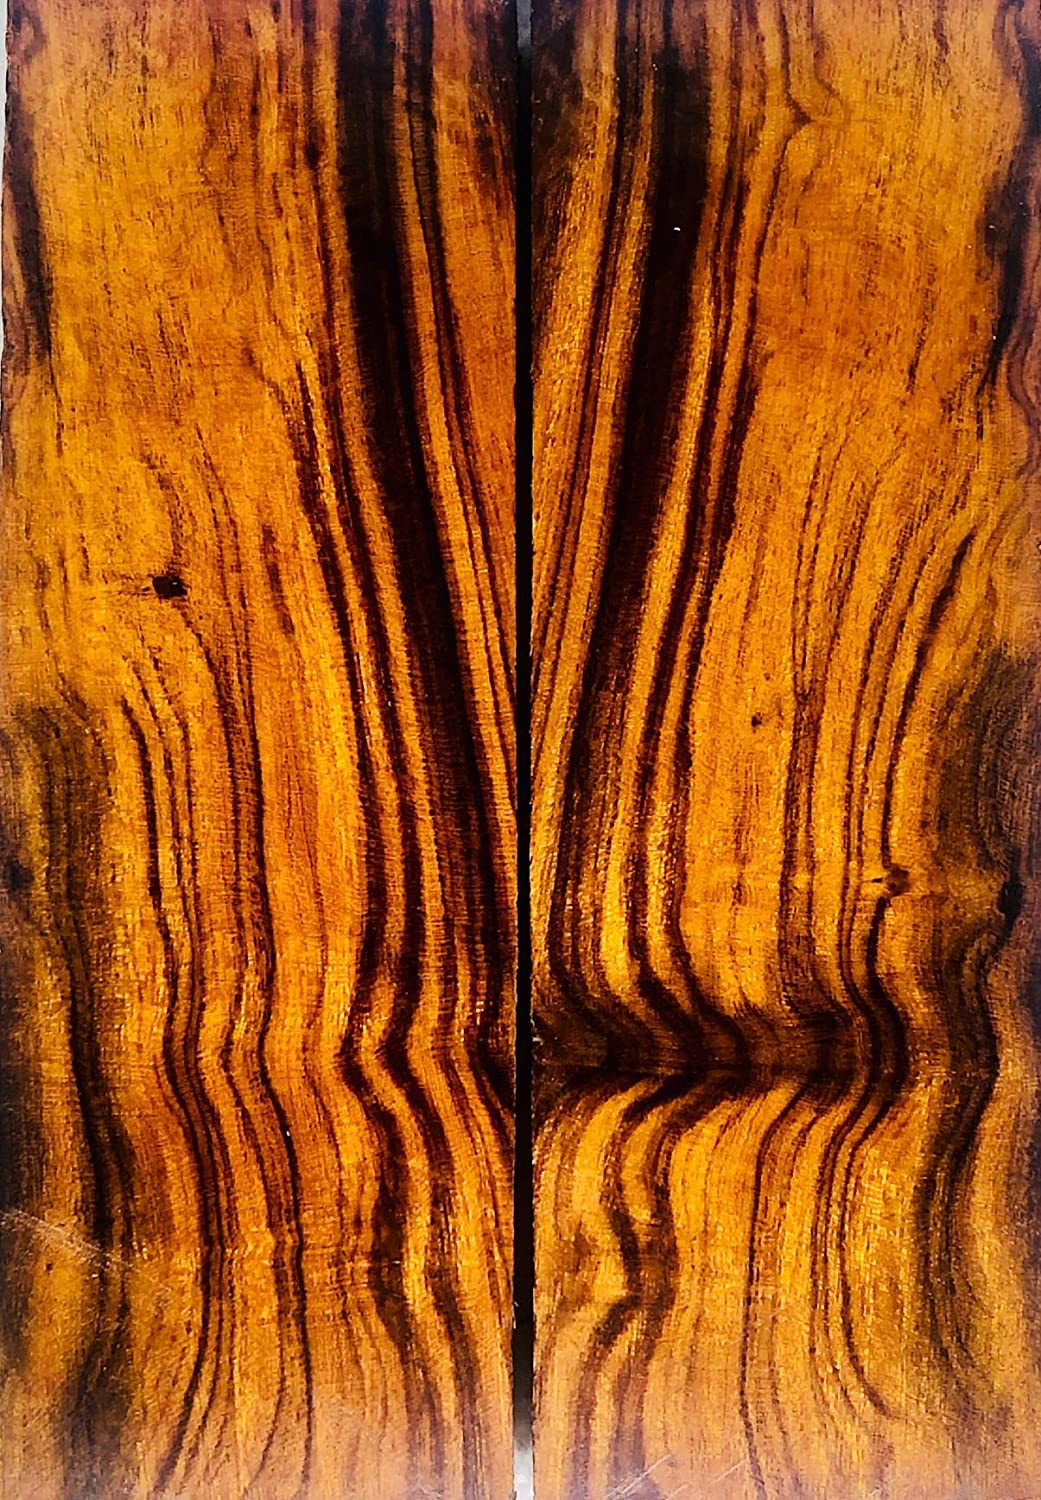 Bookmatched Ironwood Knife Scales